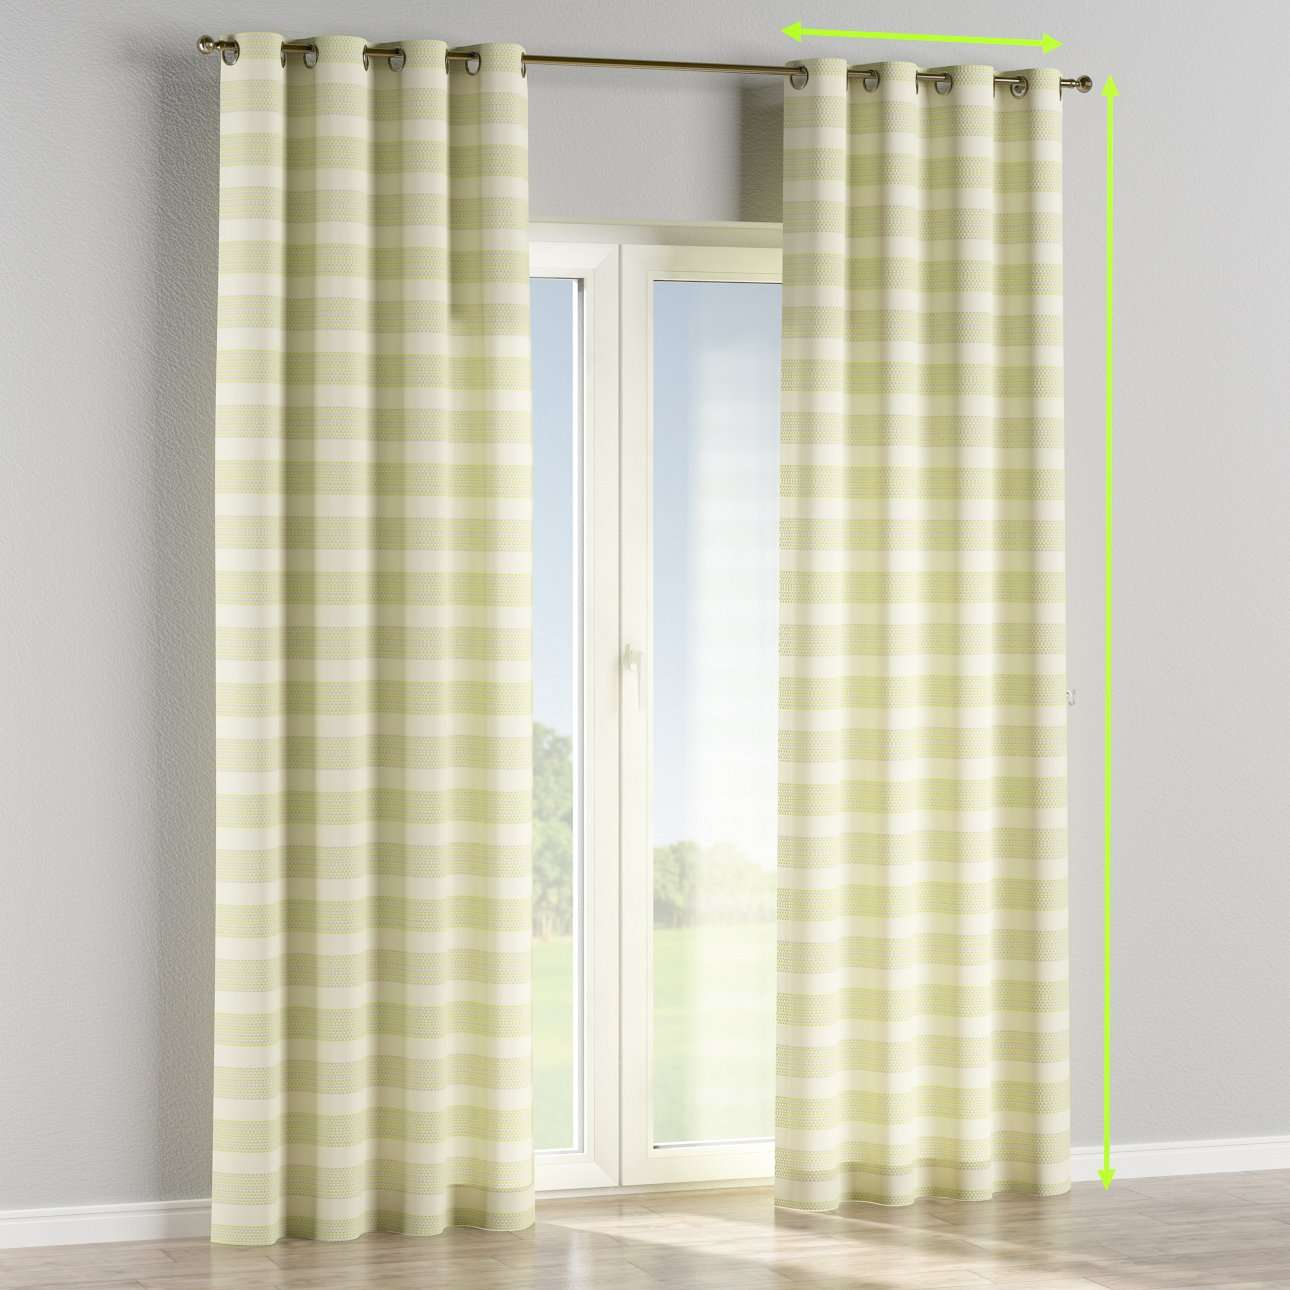 Eyelet lined curtains in collection Rustica, fabric: 140-35